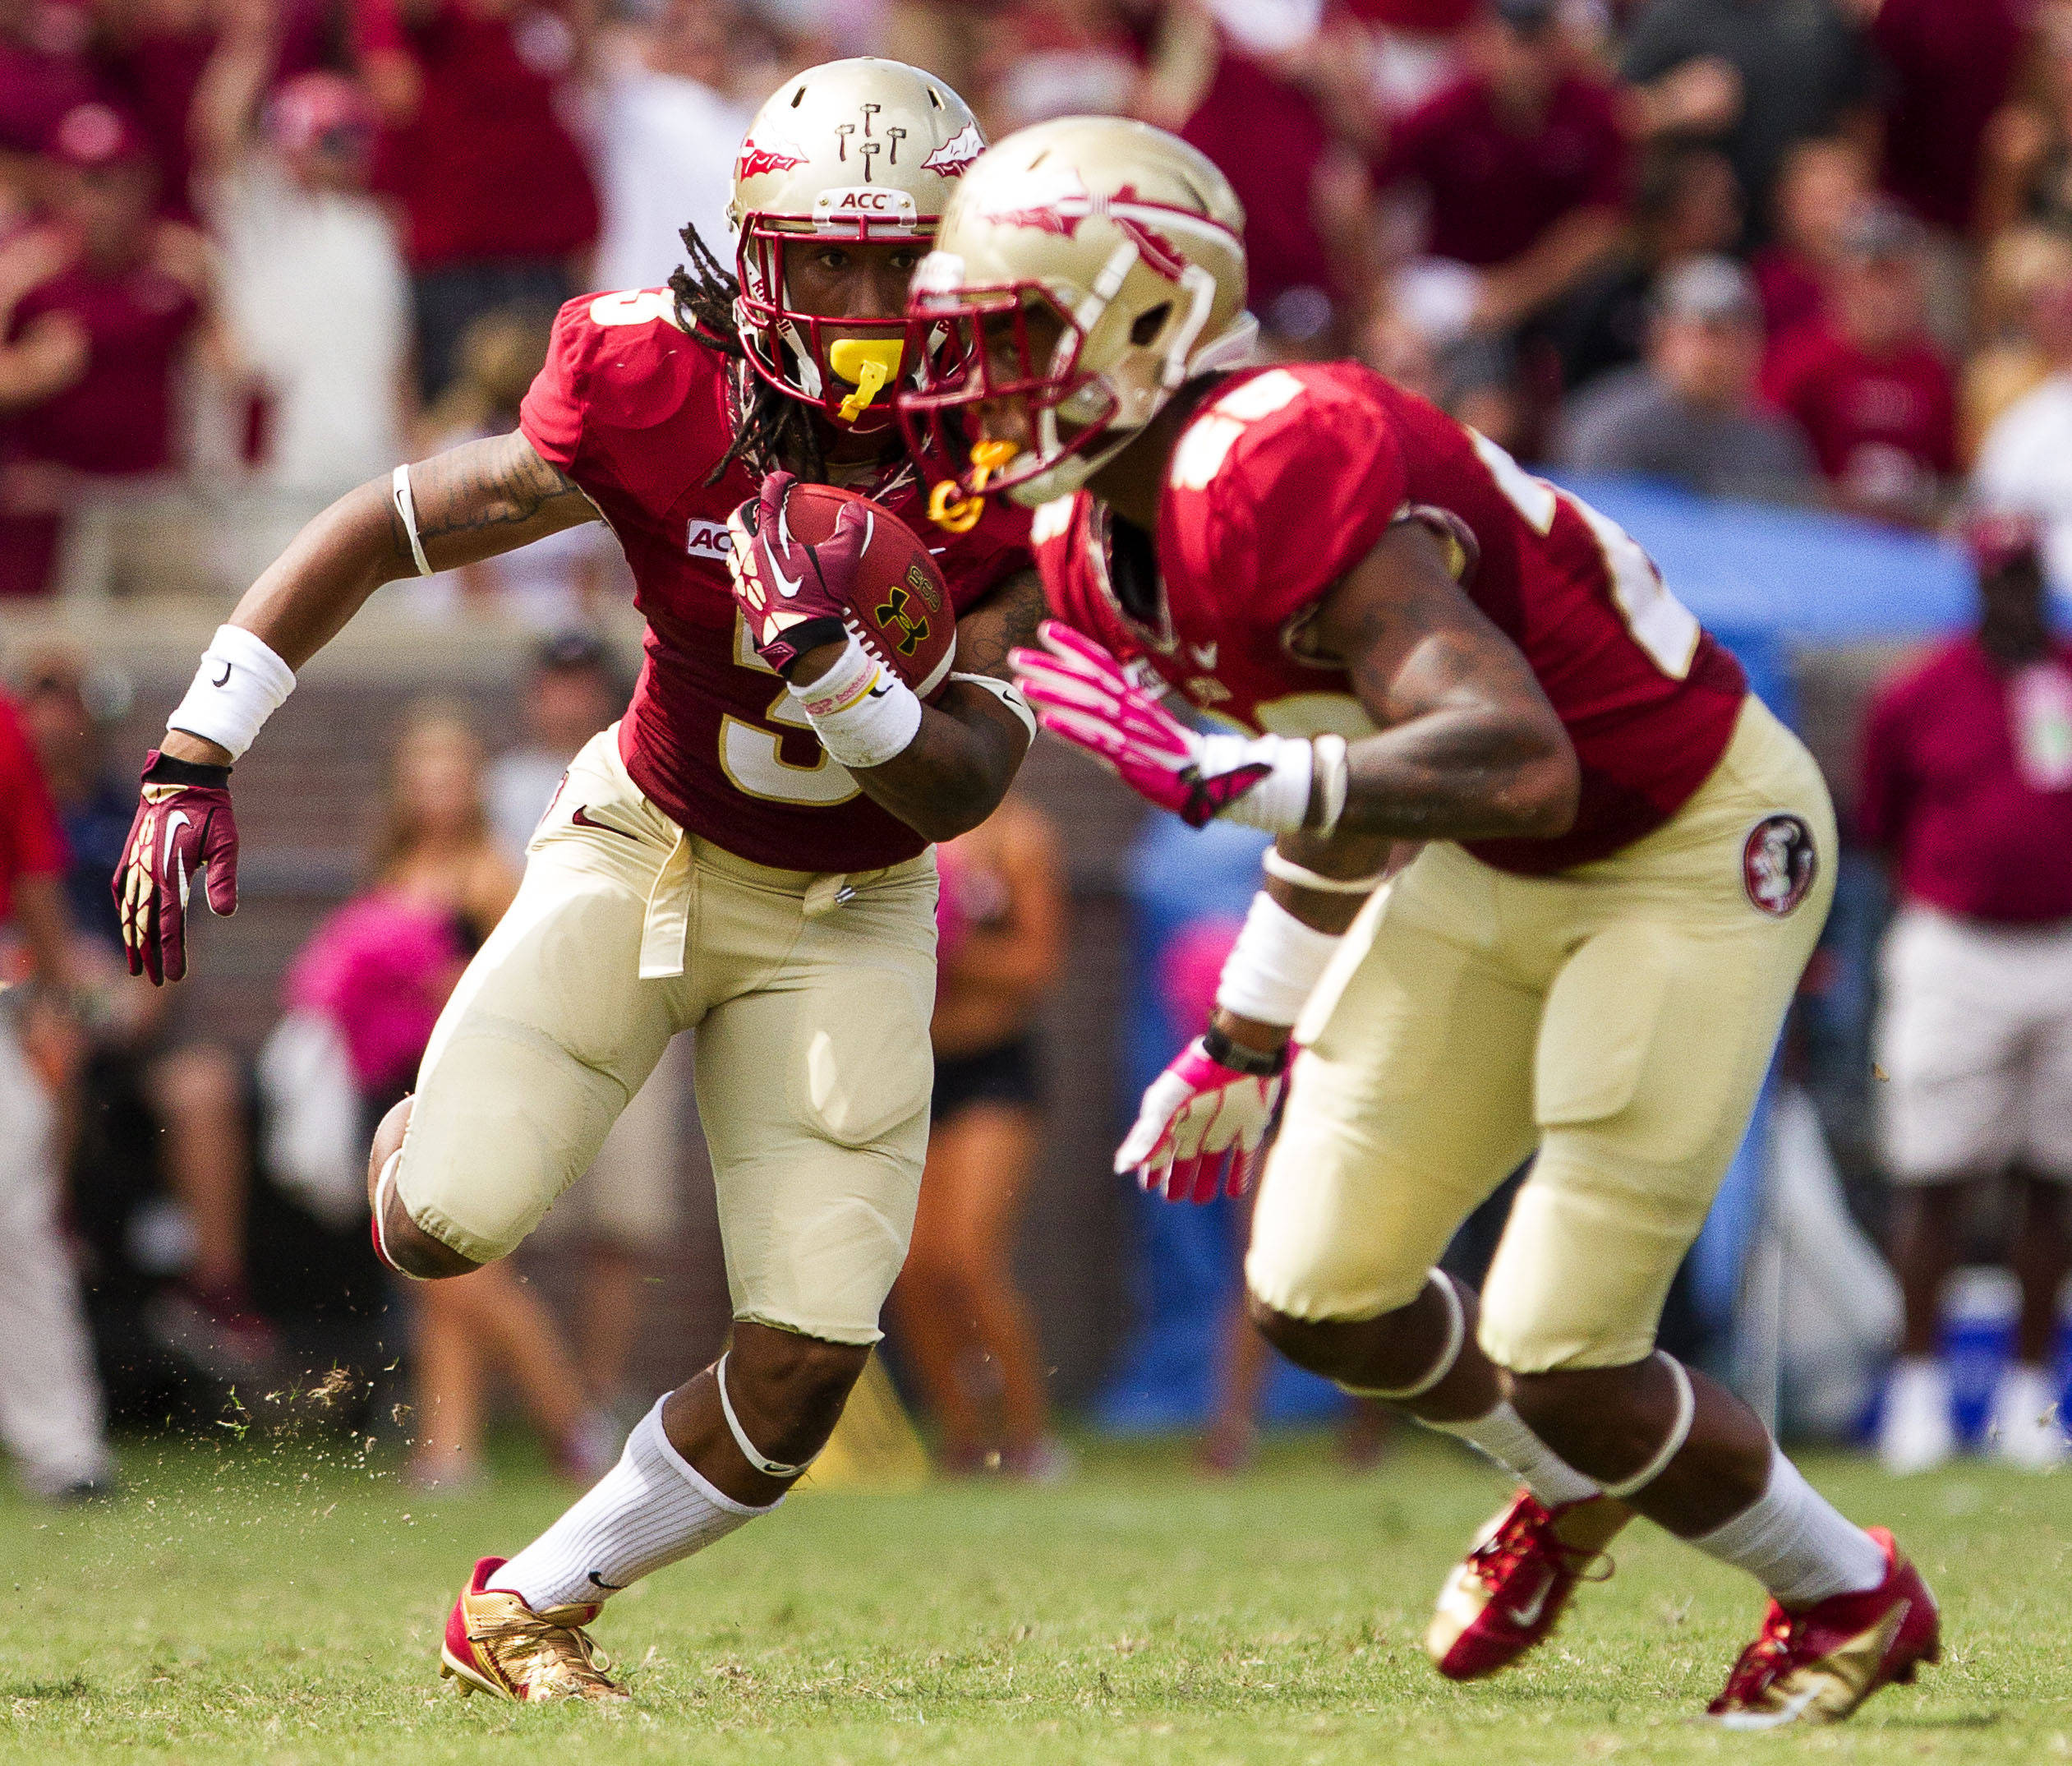 Jesus Wilson (3) runs the ball during FSU Football's 63-0 shutout of Maryland on Saturday, October 5, 2013 in Tallahassee, Fla.